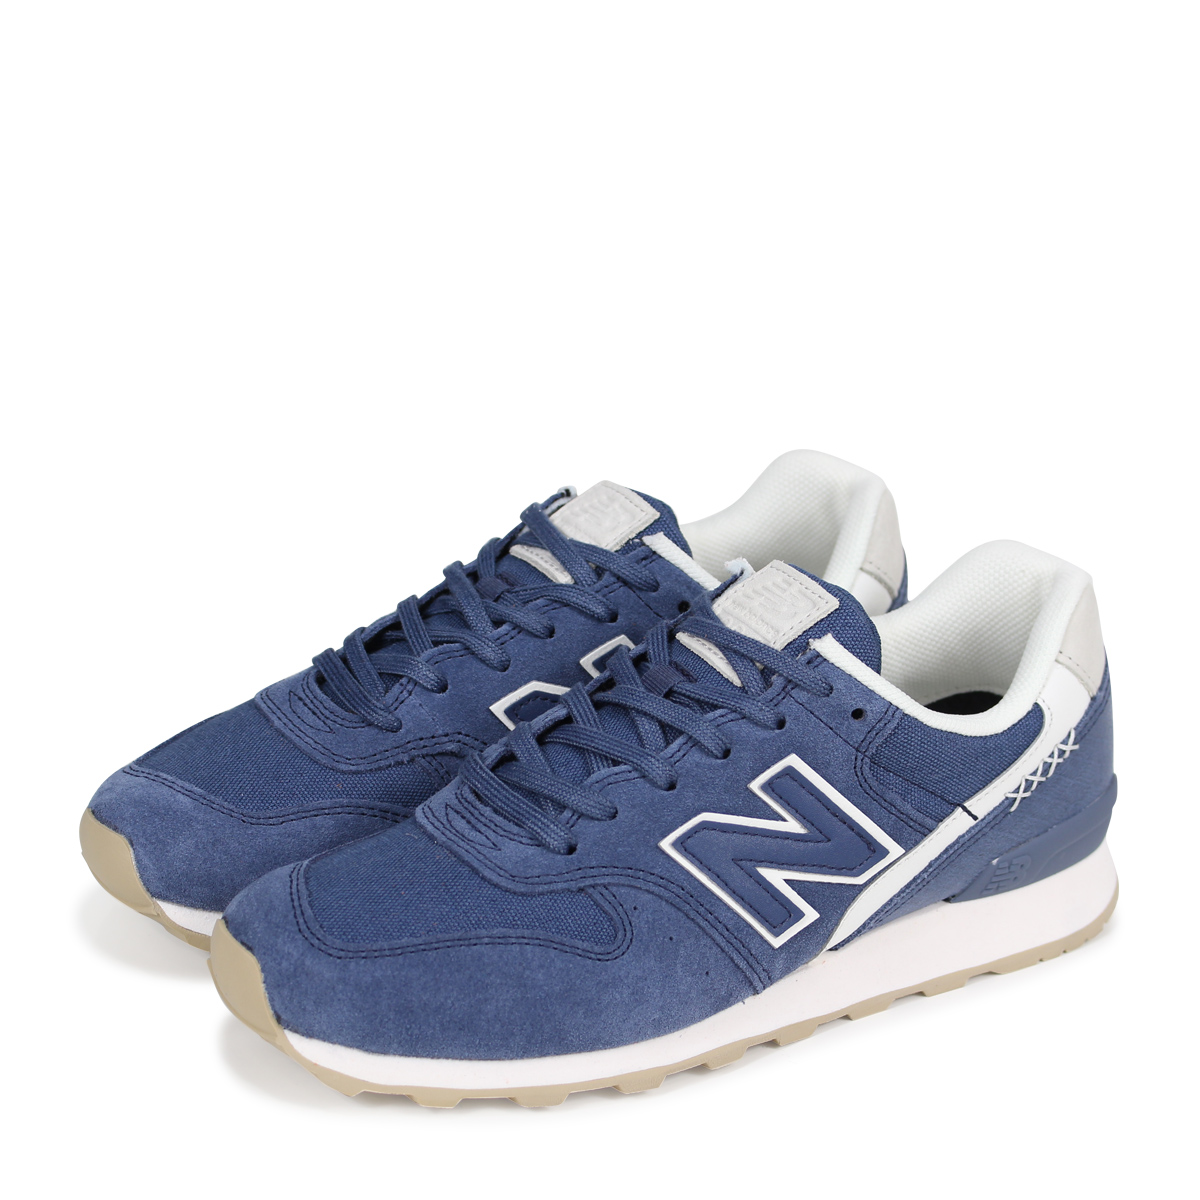 new style 3f6c3 e5f3c new balance WR996BN New Balance 996 Lady's sneakers D Wise navy [185]